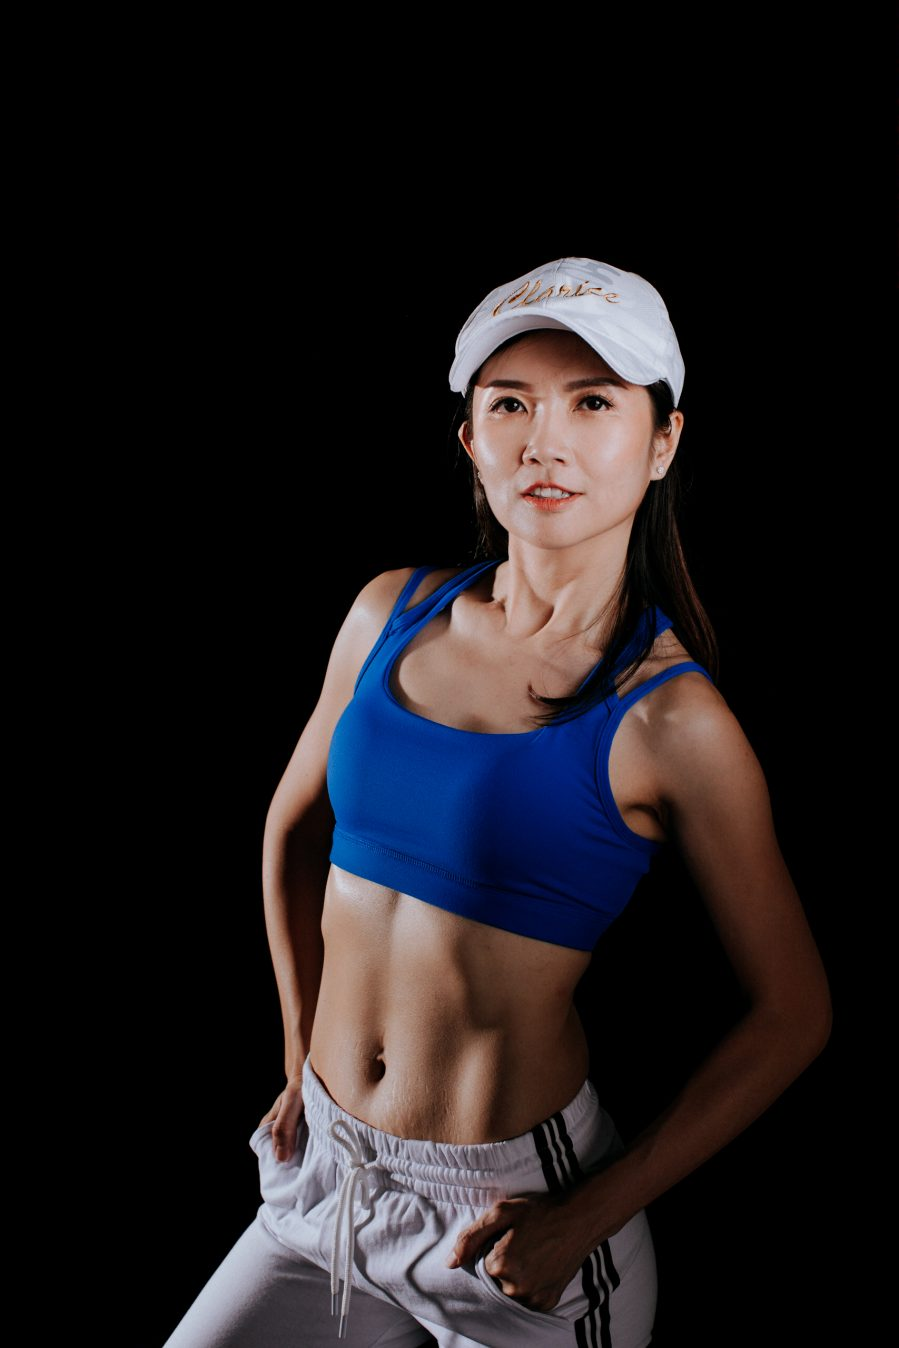 Fitness Portrait Photo Fitmom Woman Lady Studio Session Cliff Choong Photography Nike women